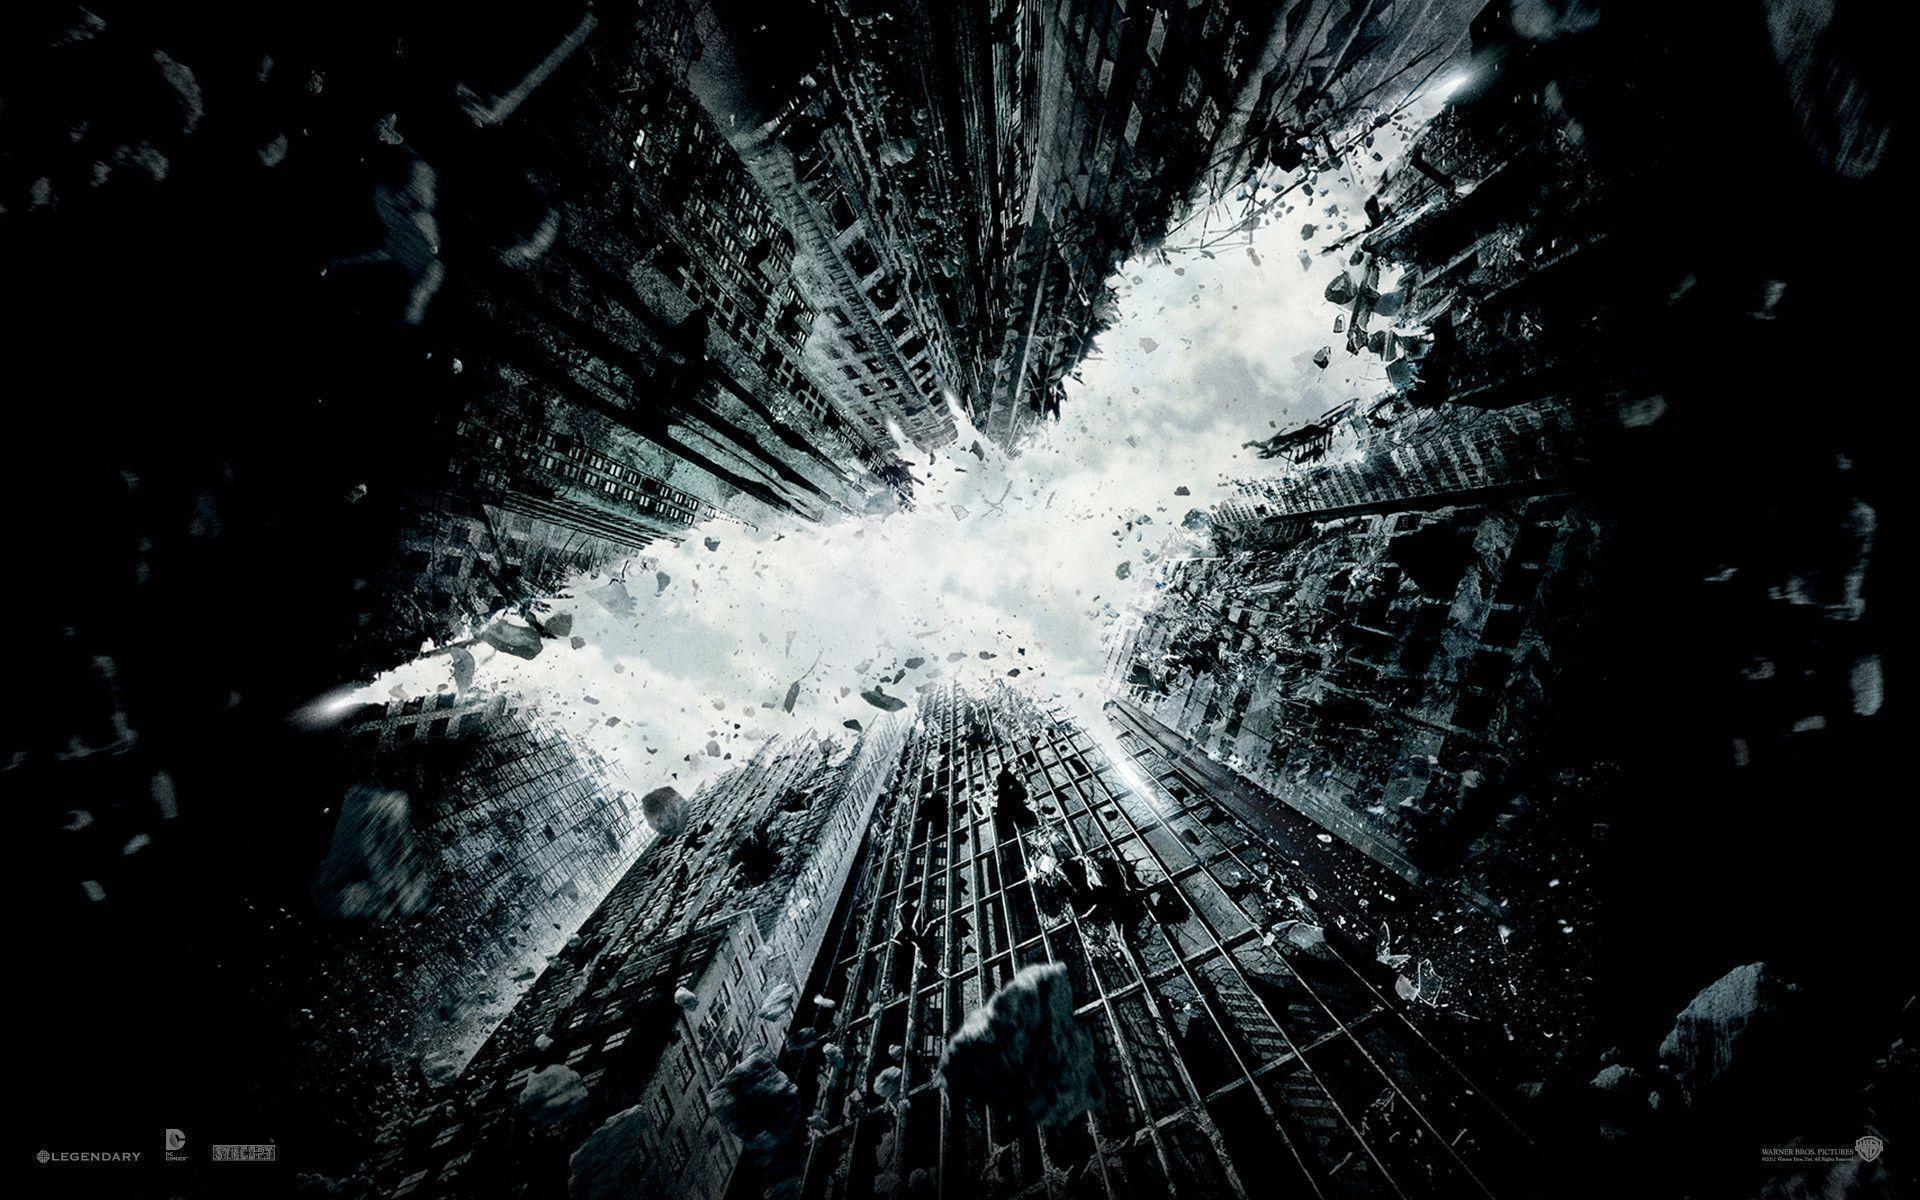 The Dark Knight Rises&Wallpapers: Decorate Your Desktop, Batman Style